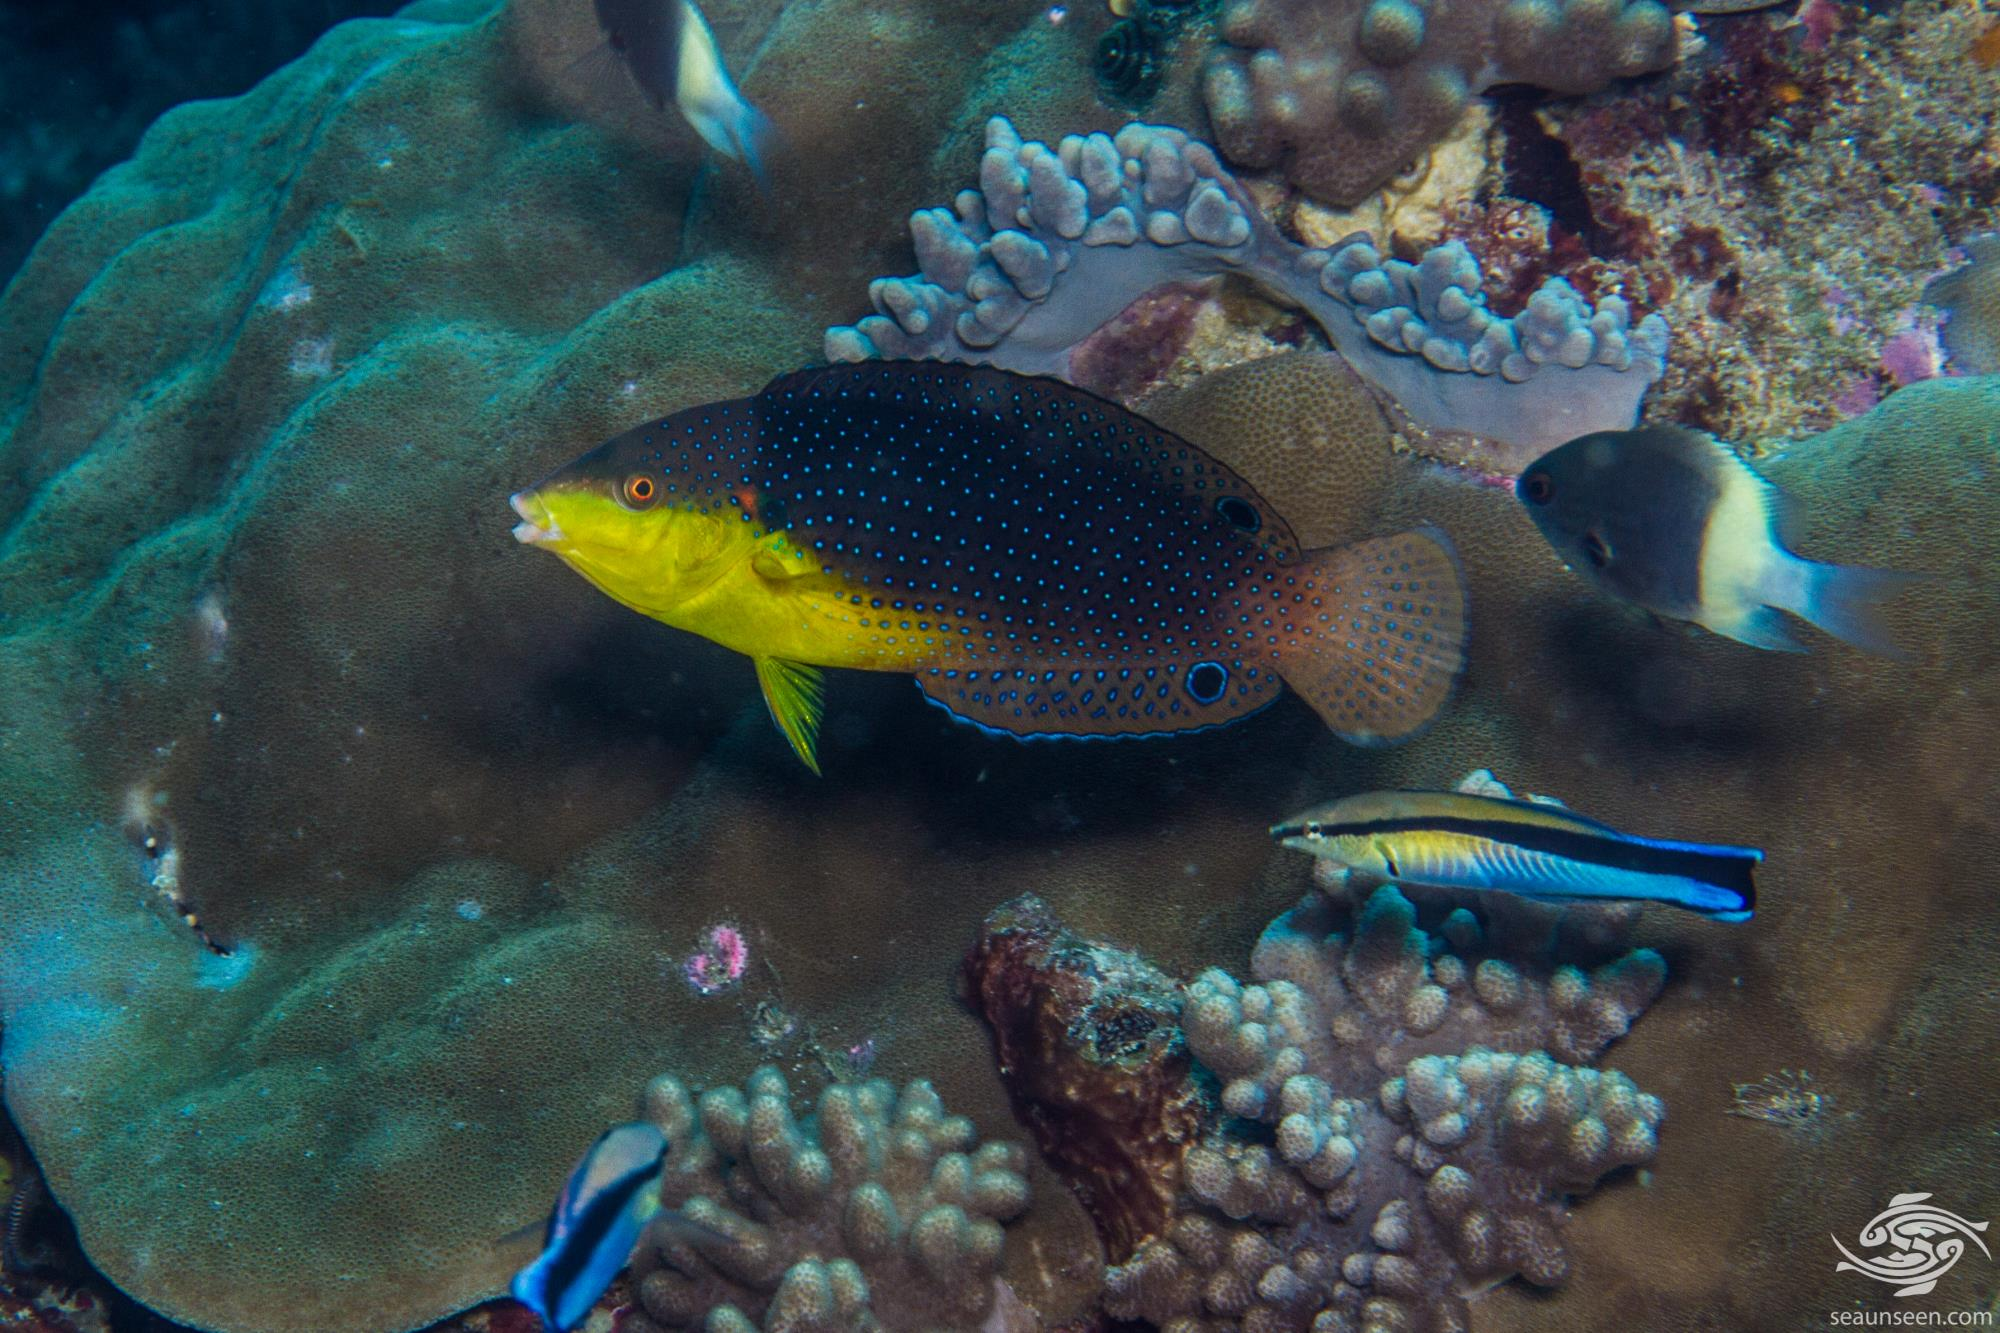 The Yellowbreasted wrasse, Anampses twistii is also known as the Twister Wrasse